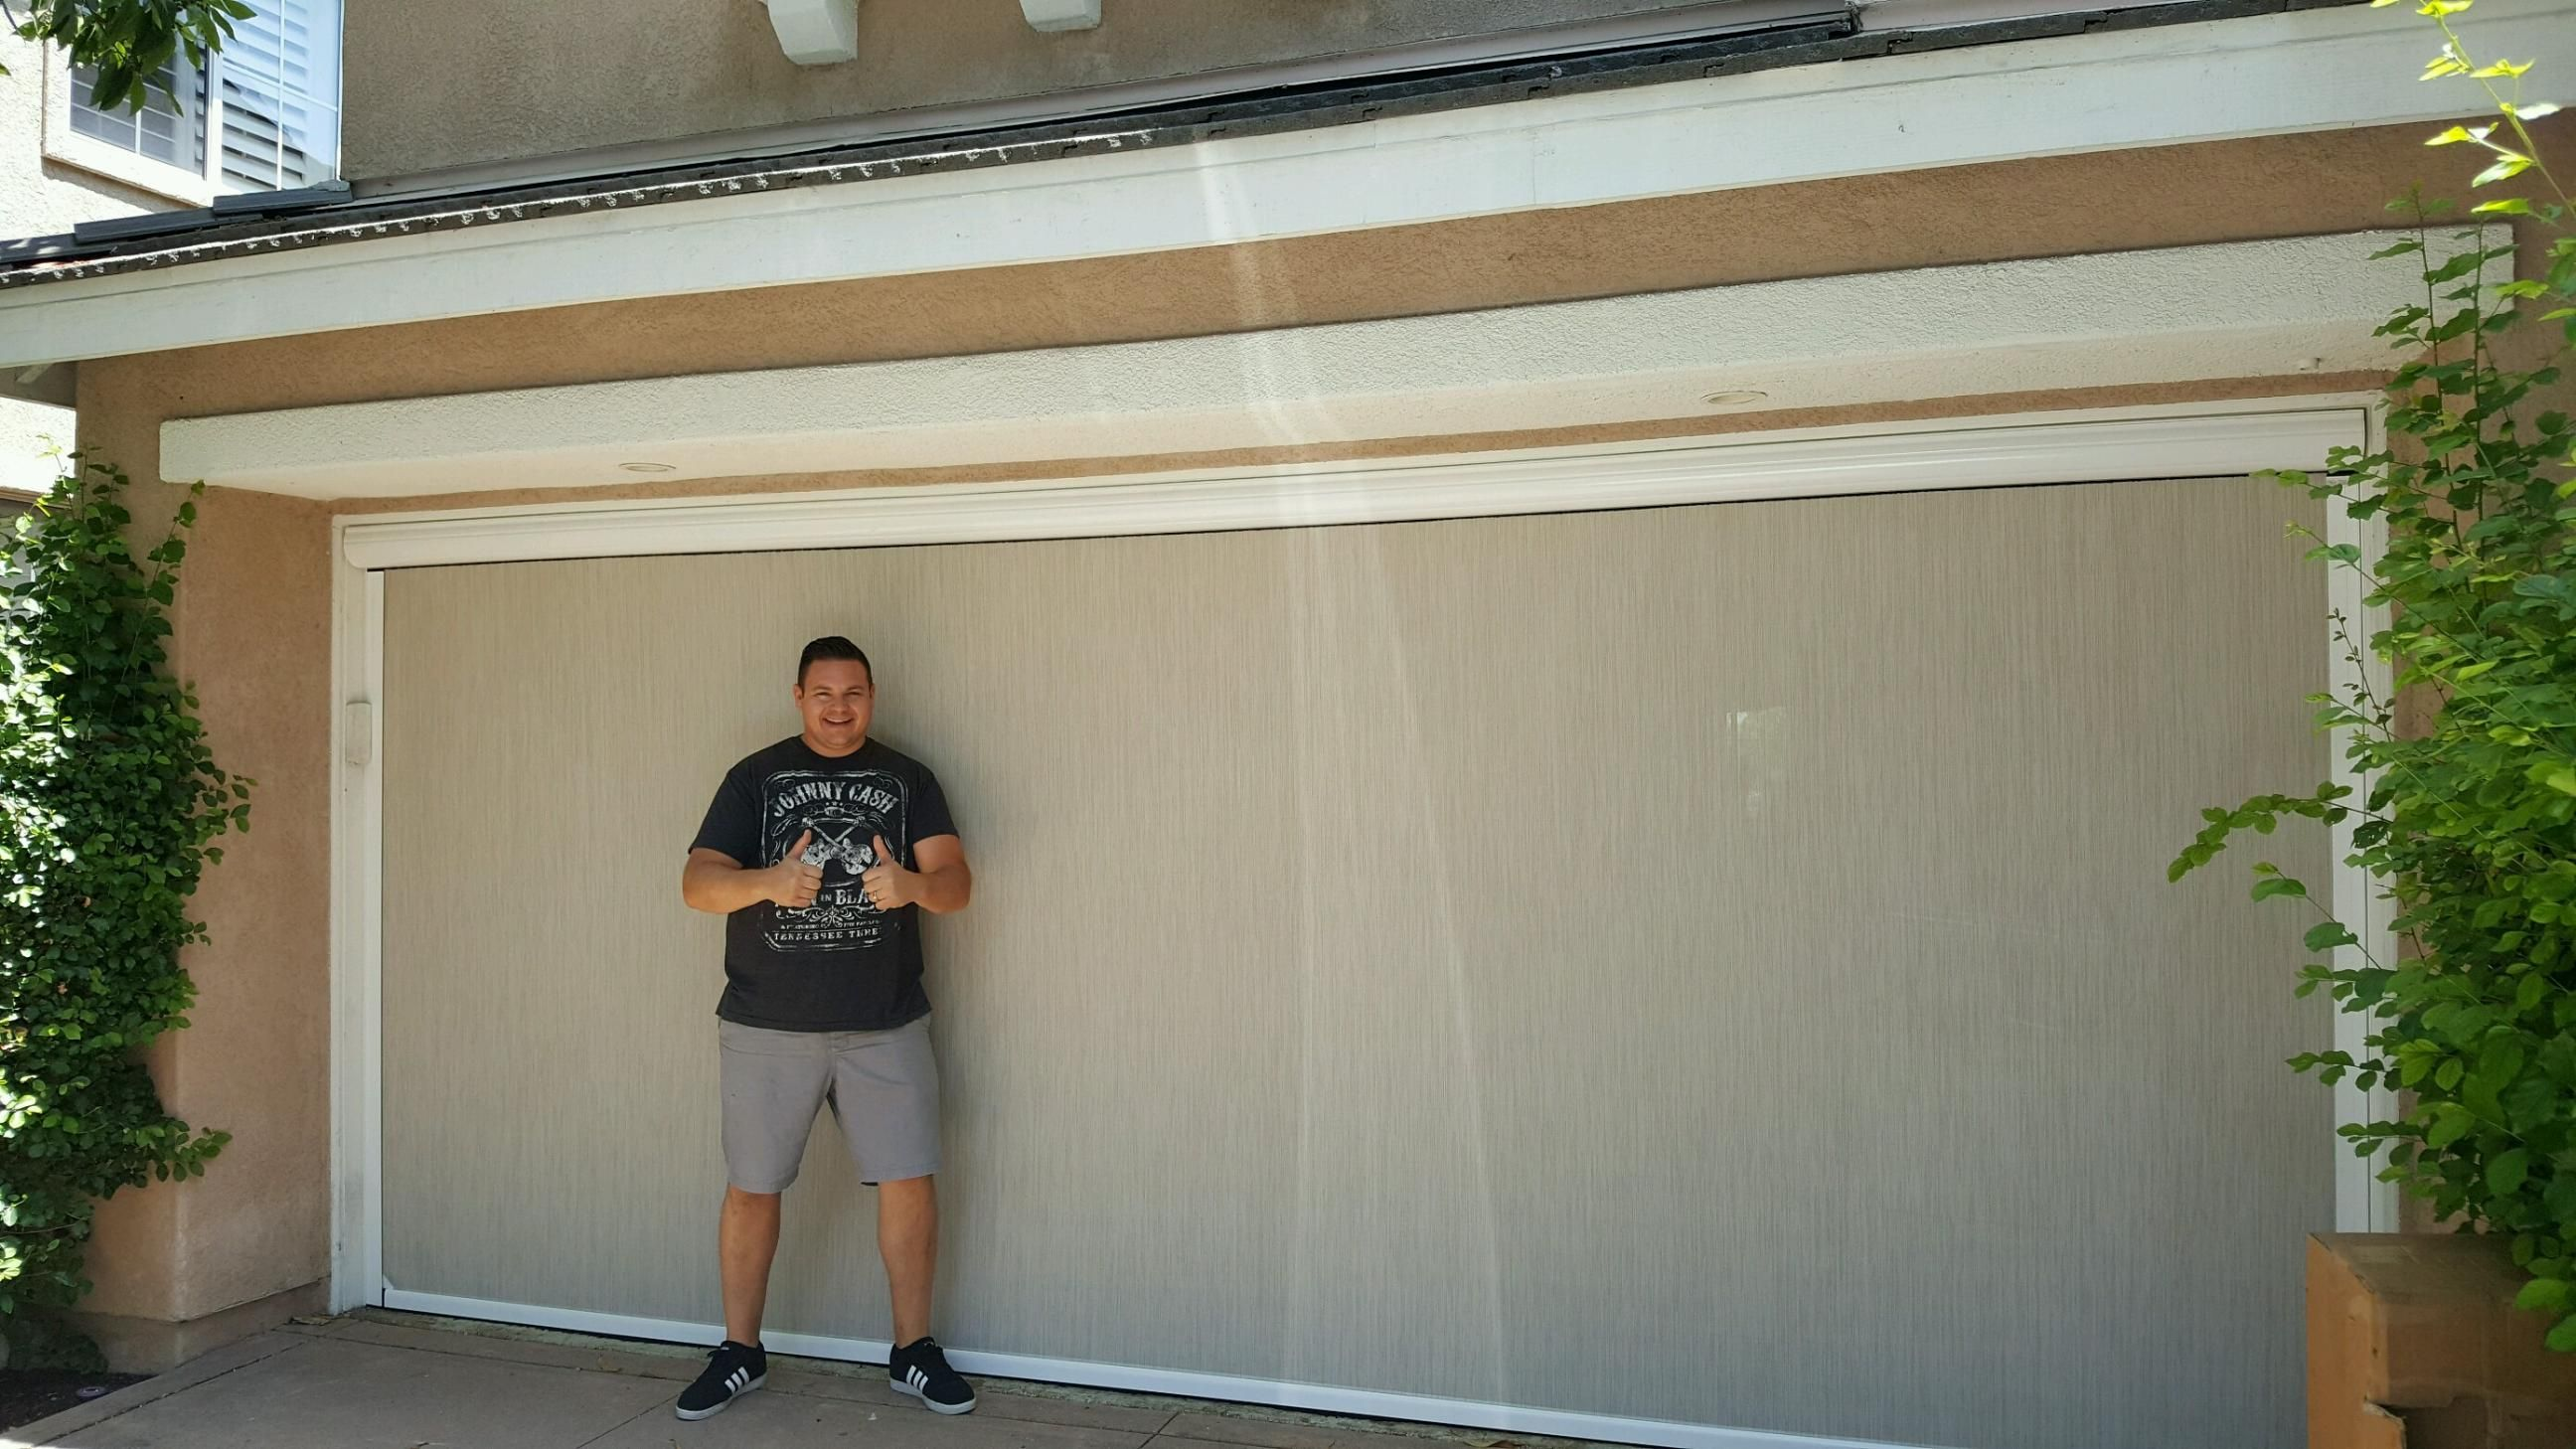 Look At How Happy This Homeowner Is With His New Motorized Power Screen Our Installers Just Finished Putting Over His Garage Screen Door Garage Doors Homeowner